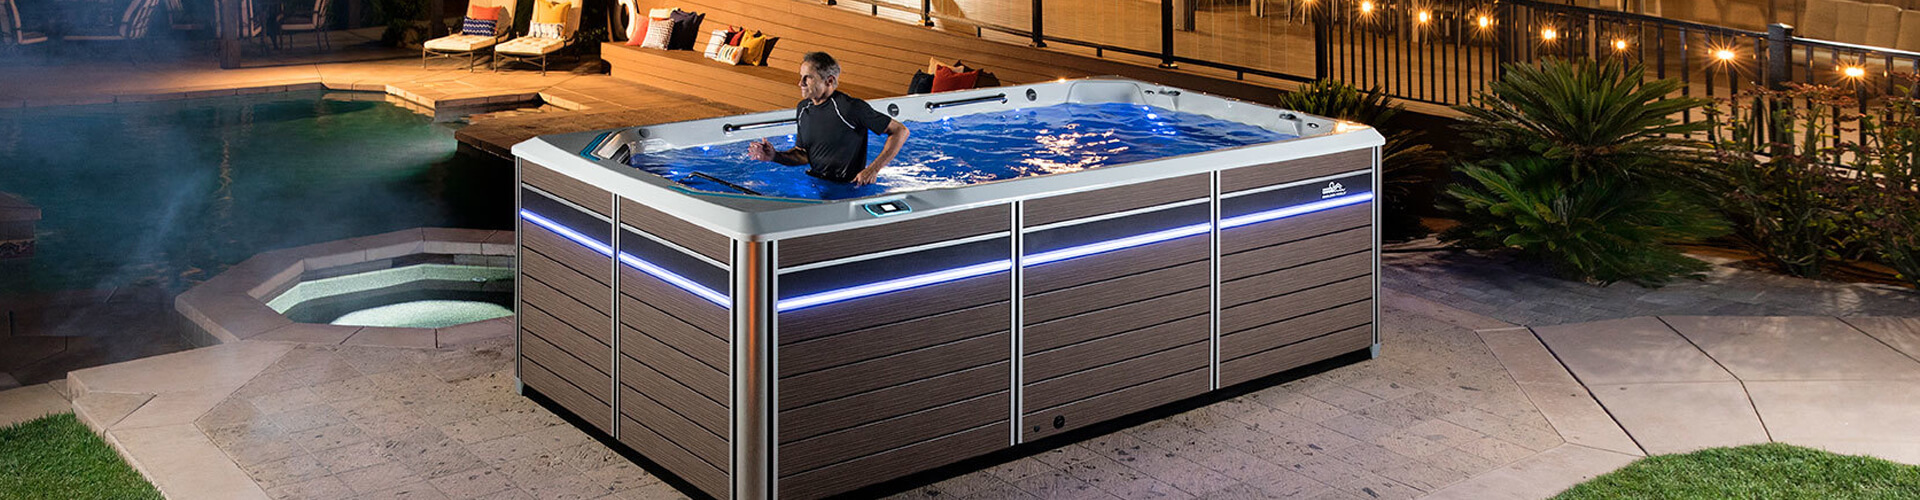 Underwater Treadmills From Endless Pools - Maximum Comfort ...